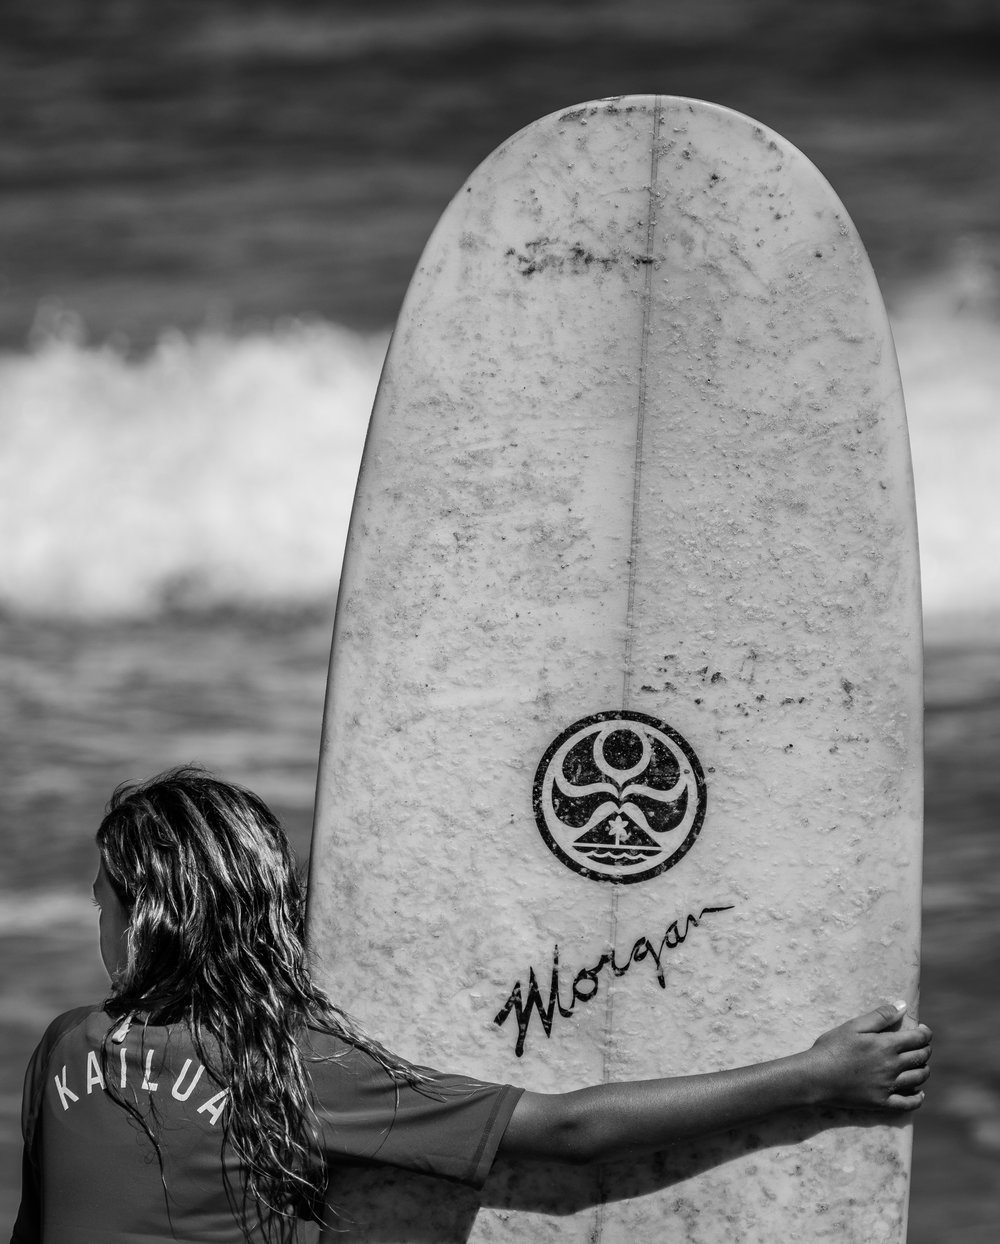 Musings by the Glass - Musings by the Surf - 2018 Kailua Shorebreak Classic